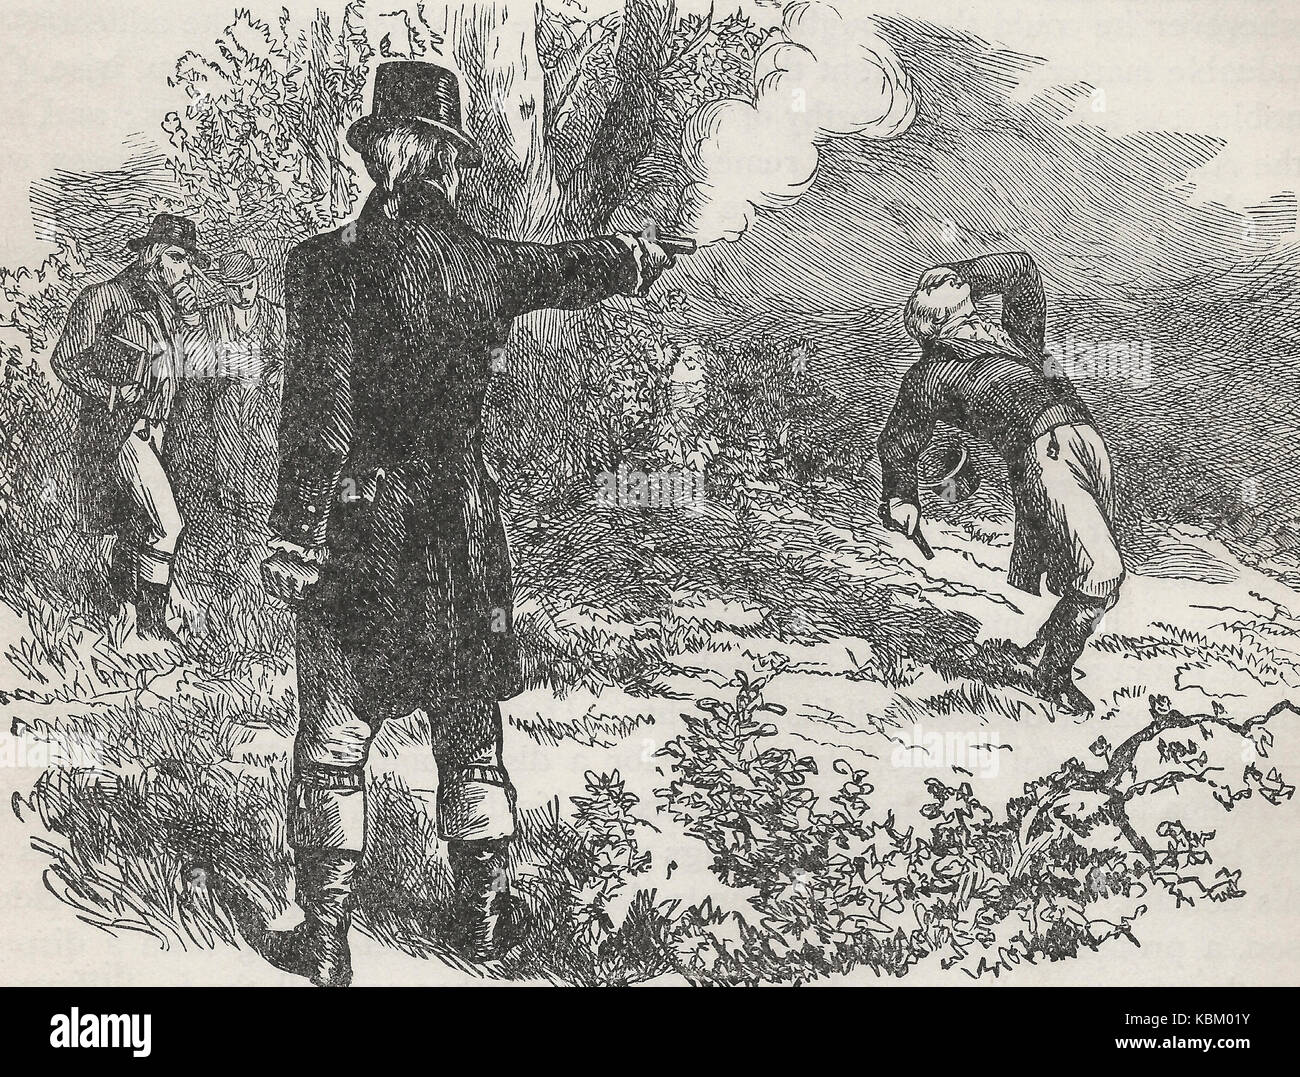 the duel between the alexander hamilton and aaron burr The duel between aaron burr and alexander hamilton has become legendary because of the identities of the men involved after all, this was a duel between a man who was (at the time of the duel) the vice president of the united states and another man who was widely seen as one of the most important figures of the revolutionary war and a.